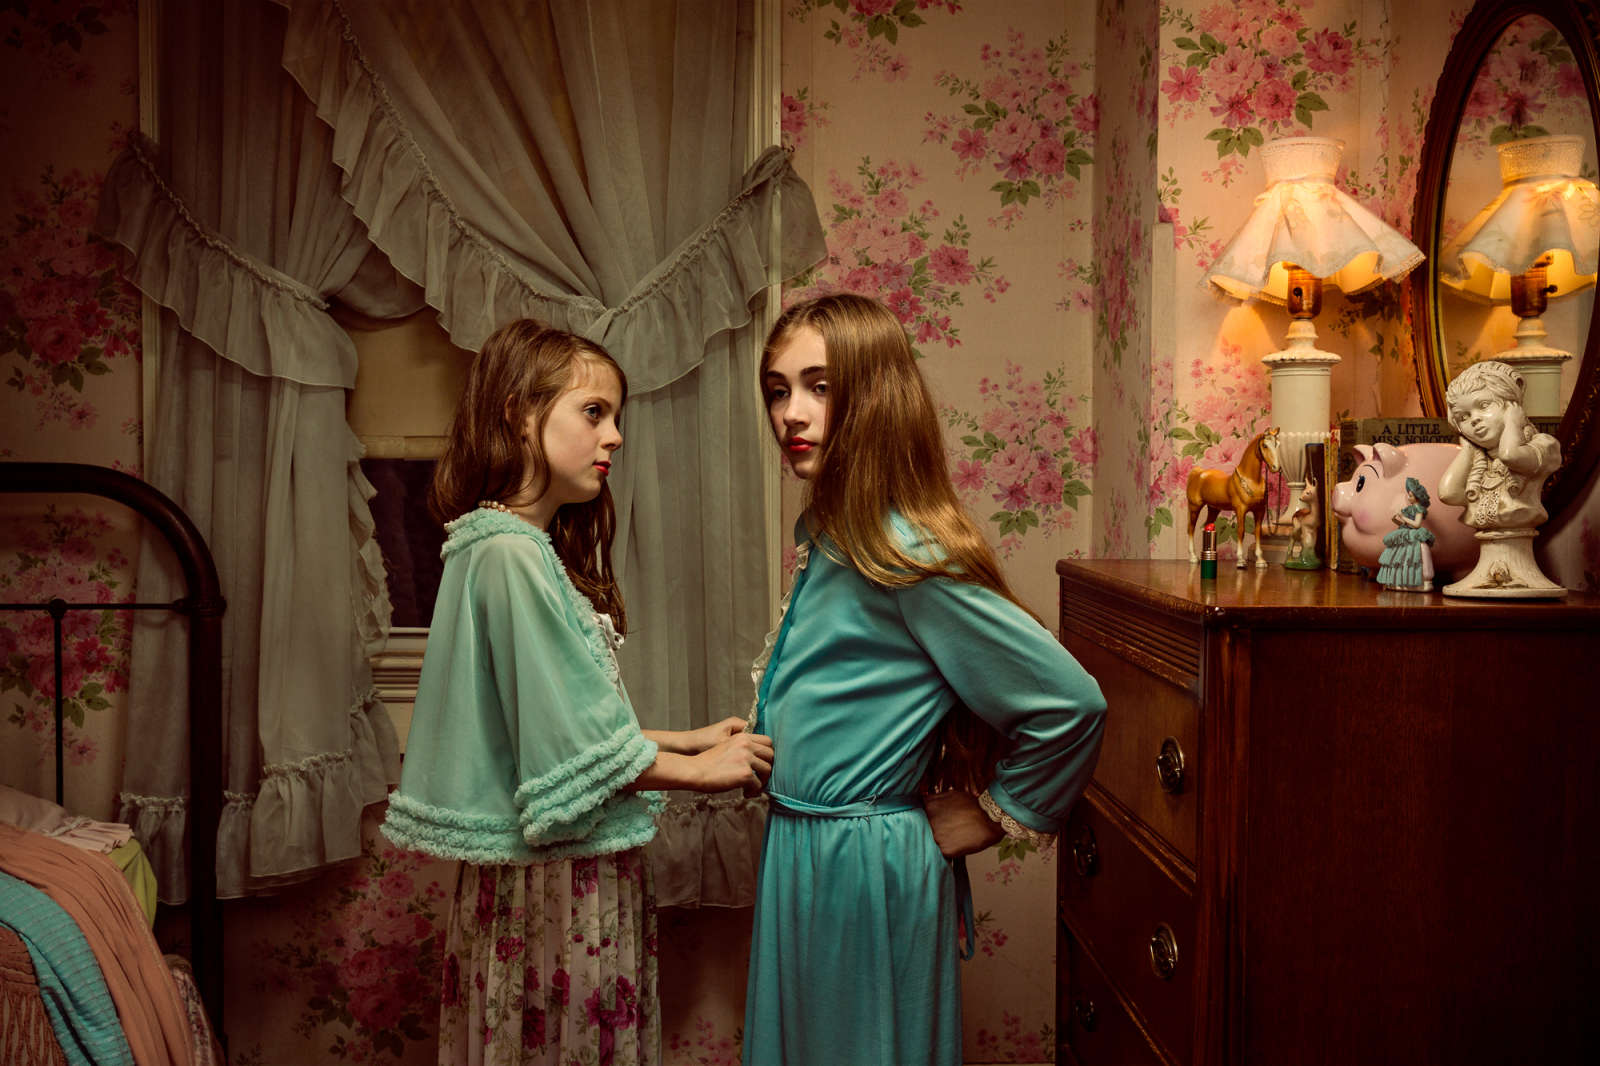 Holly Andres, Afterlight: Belmont House, from The Fallen Fawn, 2015